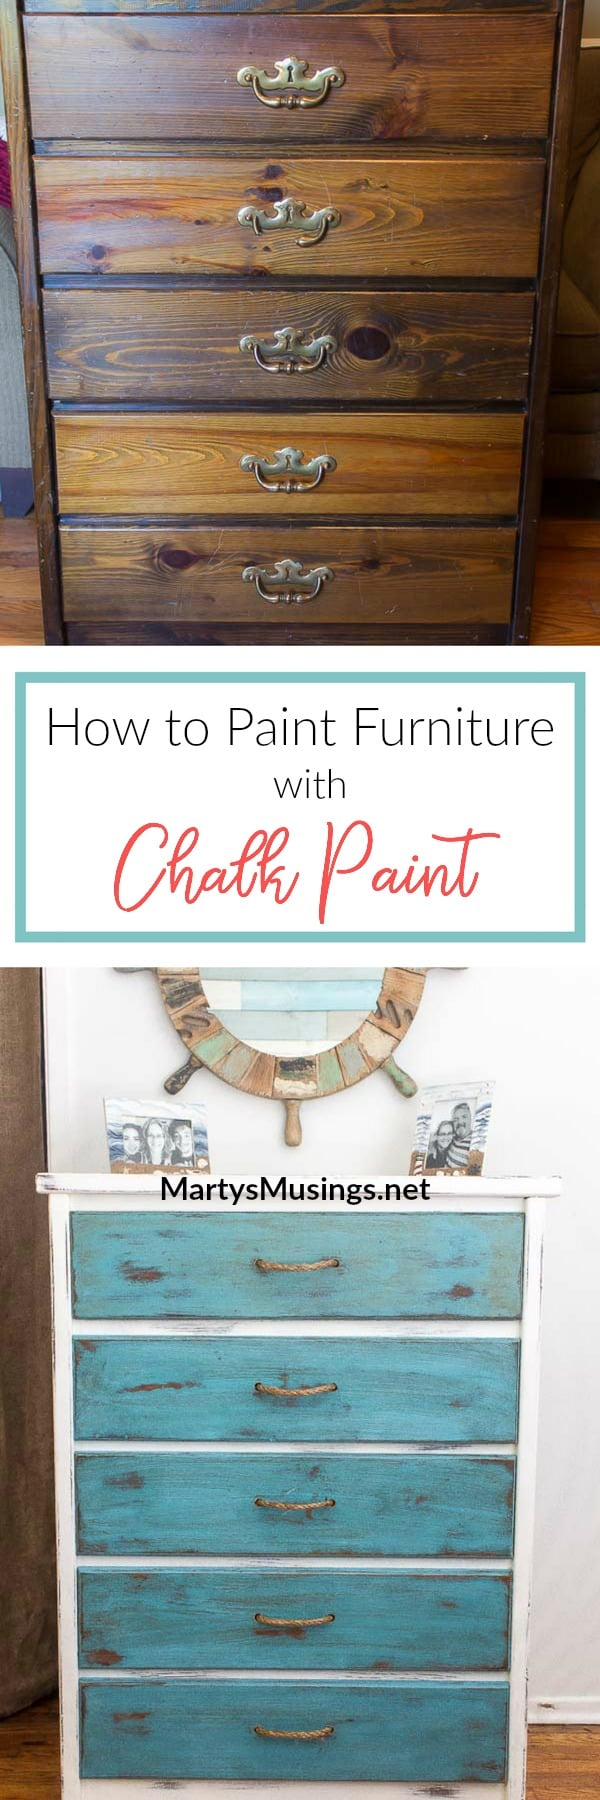 Don't throw away that old, beaten up piece of furniture! Learn how to paint furniture with chalk paint and transform it the cheap and easy way!